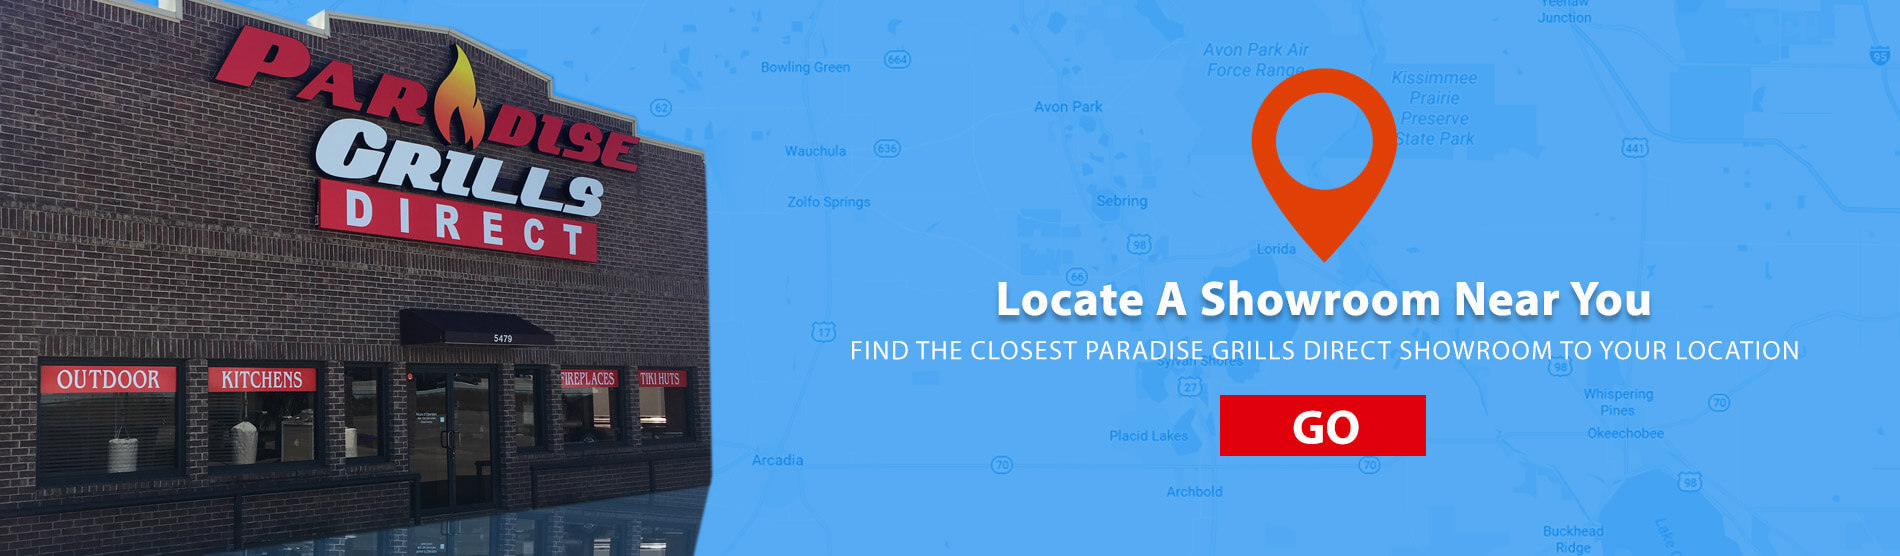 Locate a Showroom